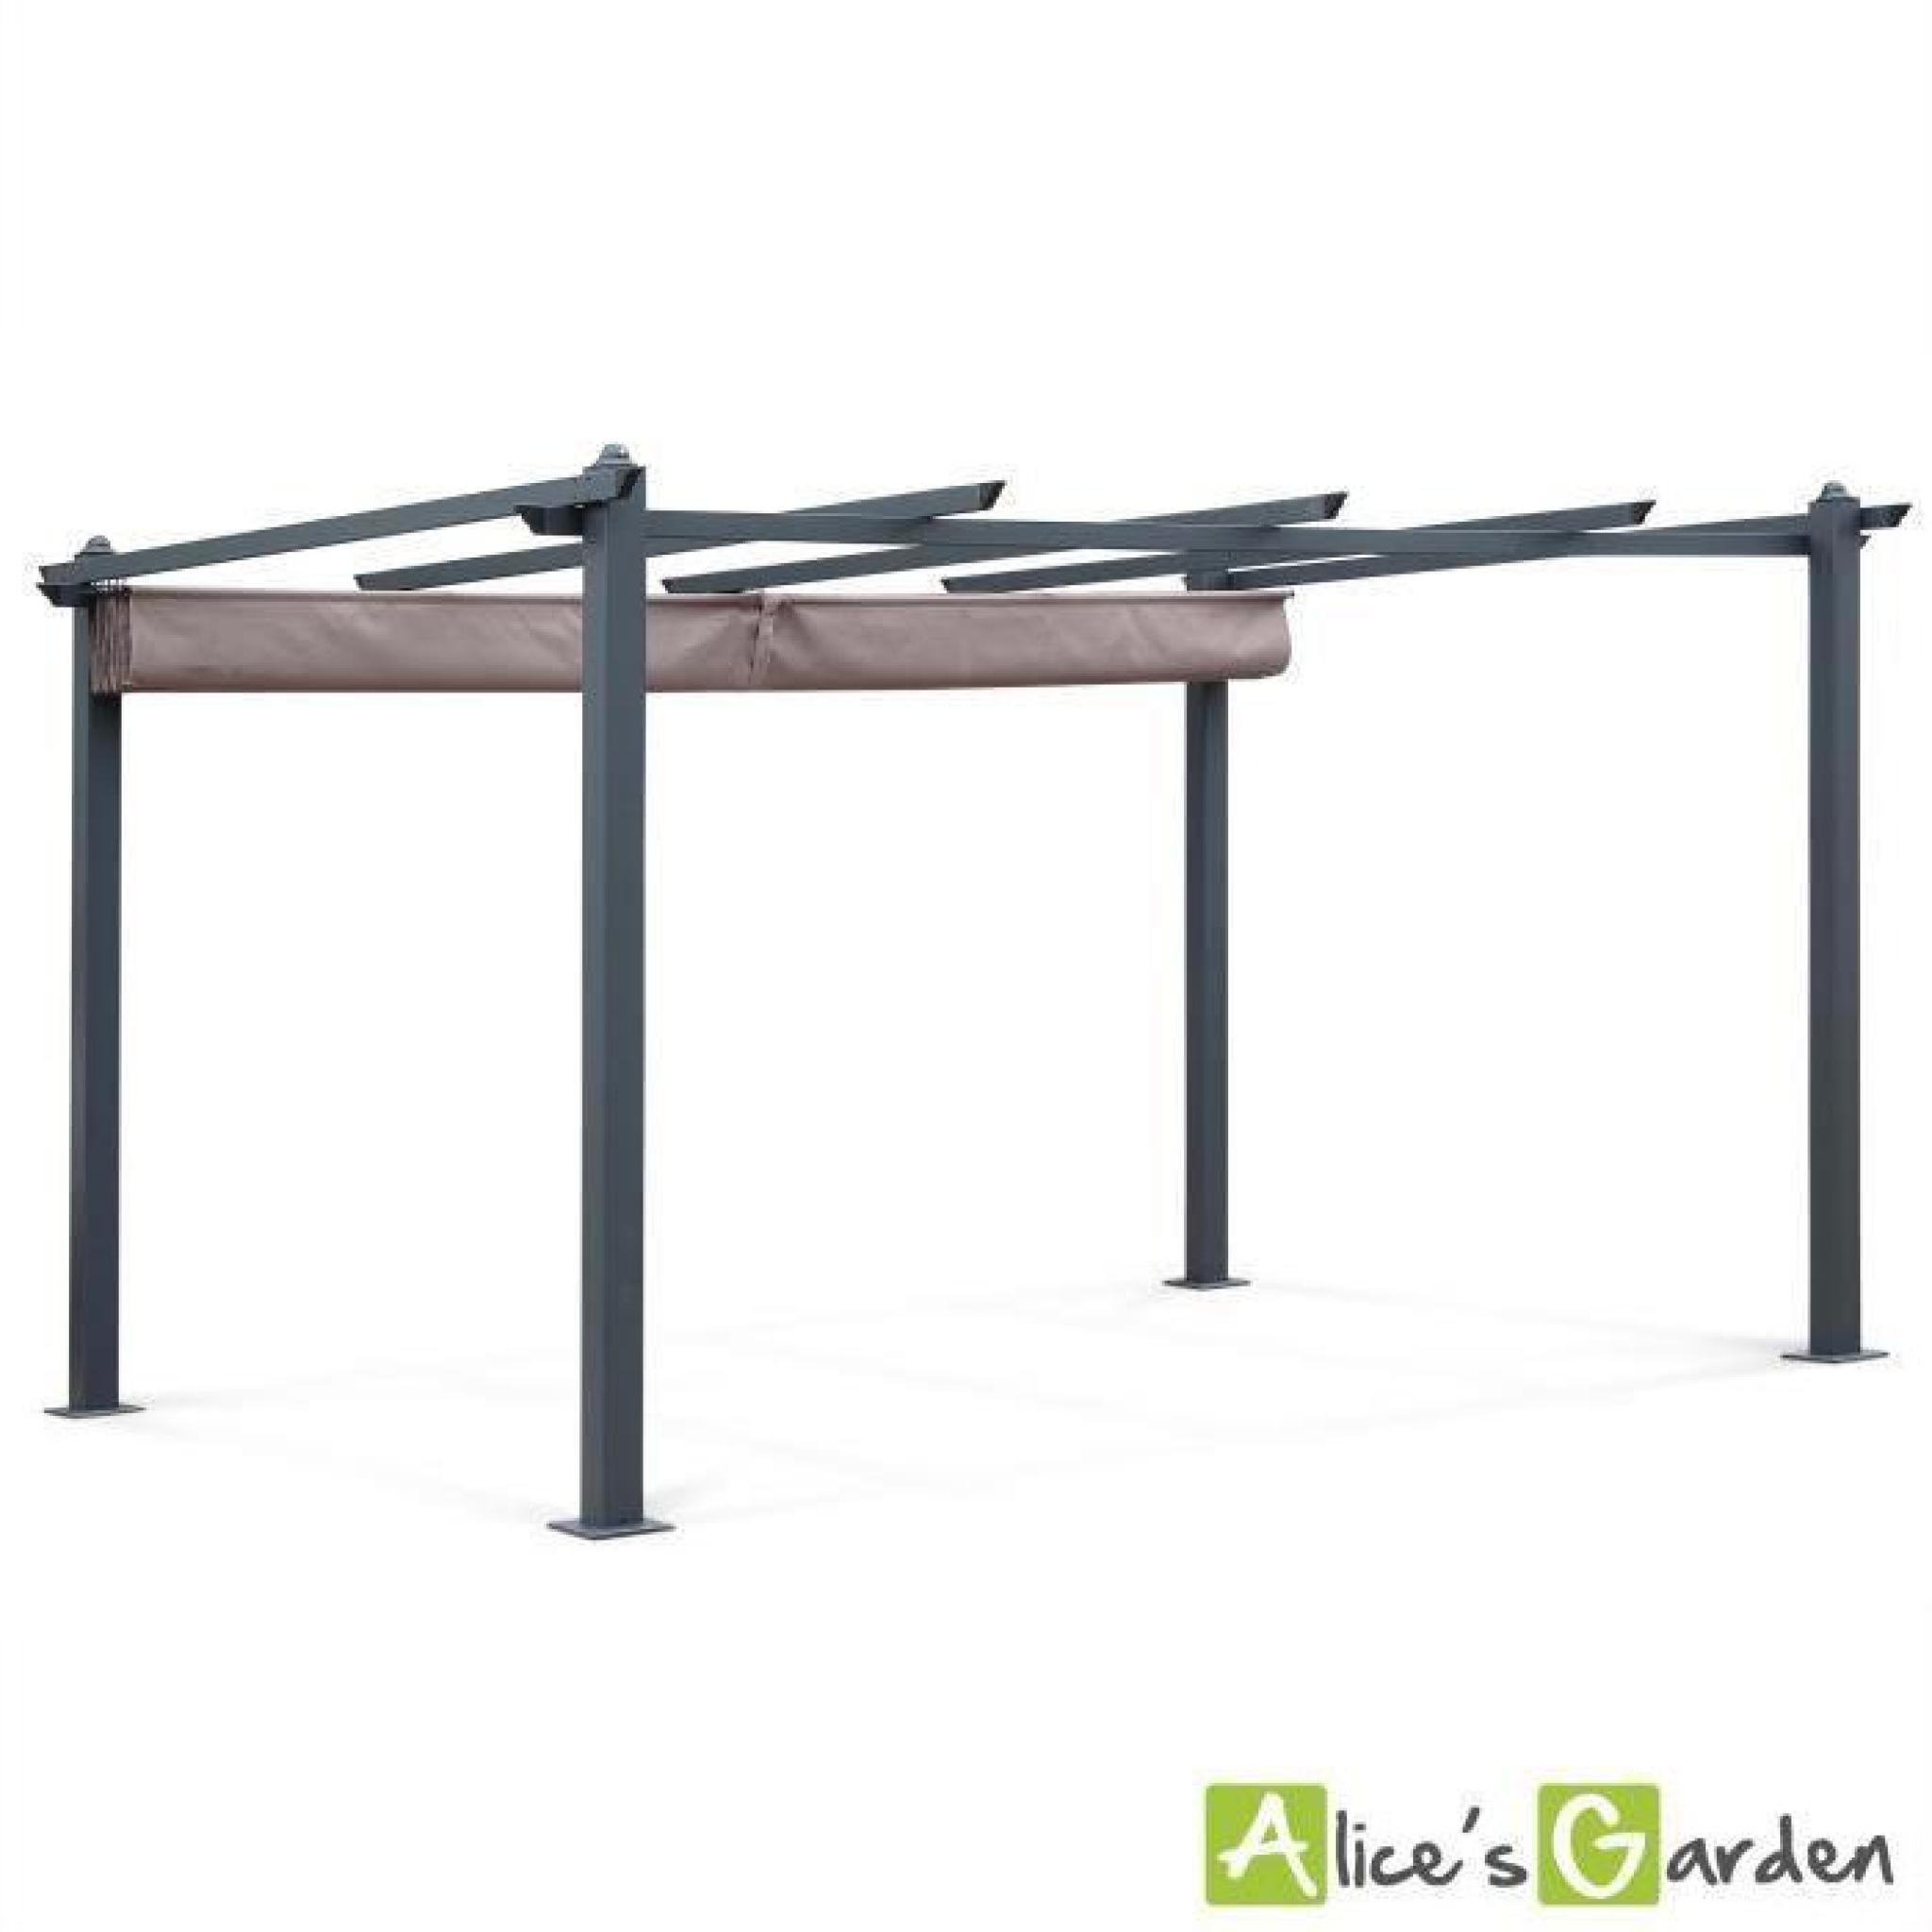 tente de jardin pergola aluminium 3x4m condate taupe. Black Bedroom Furniture Sets. Home Design Ideas